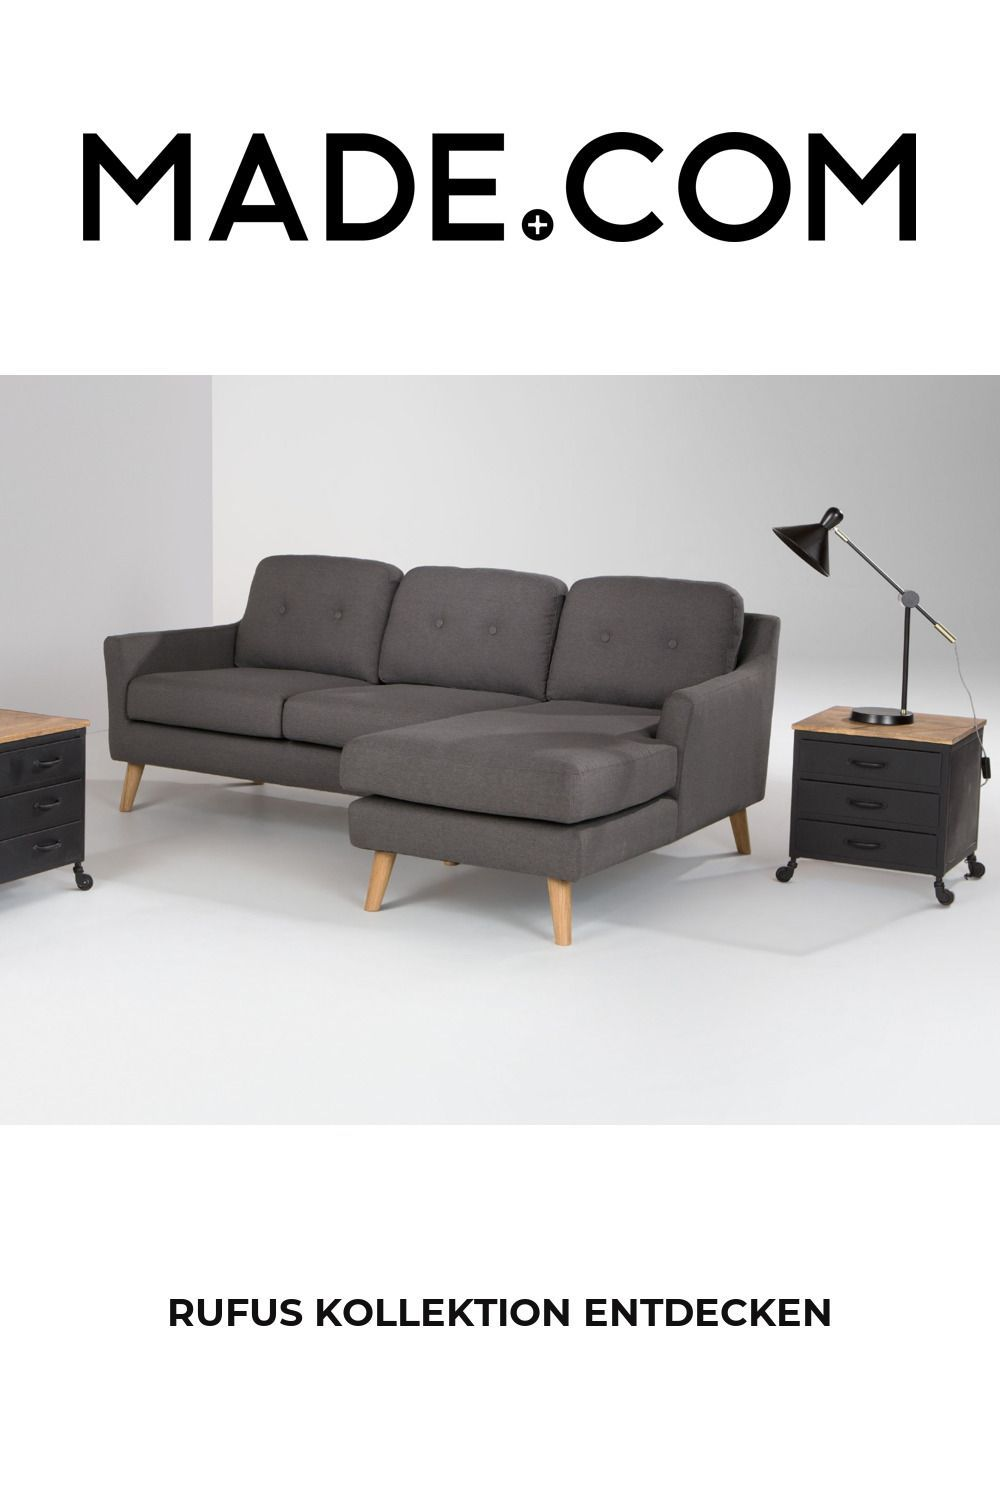 Pin On Products In 2020 Ecksofa Sofa Recamiere